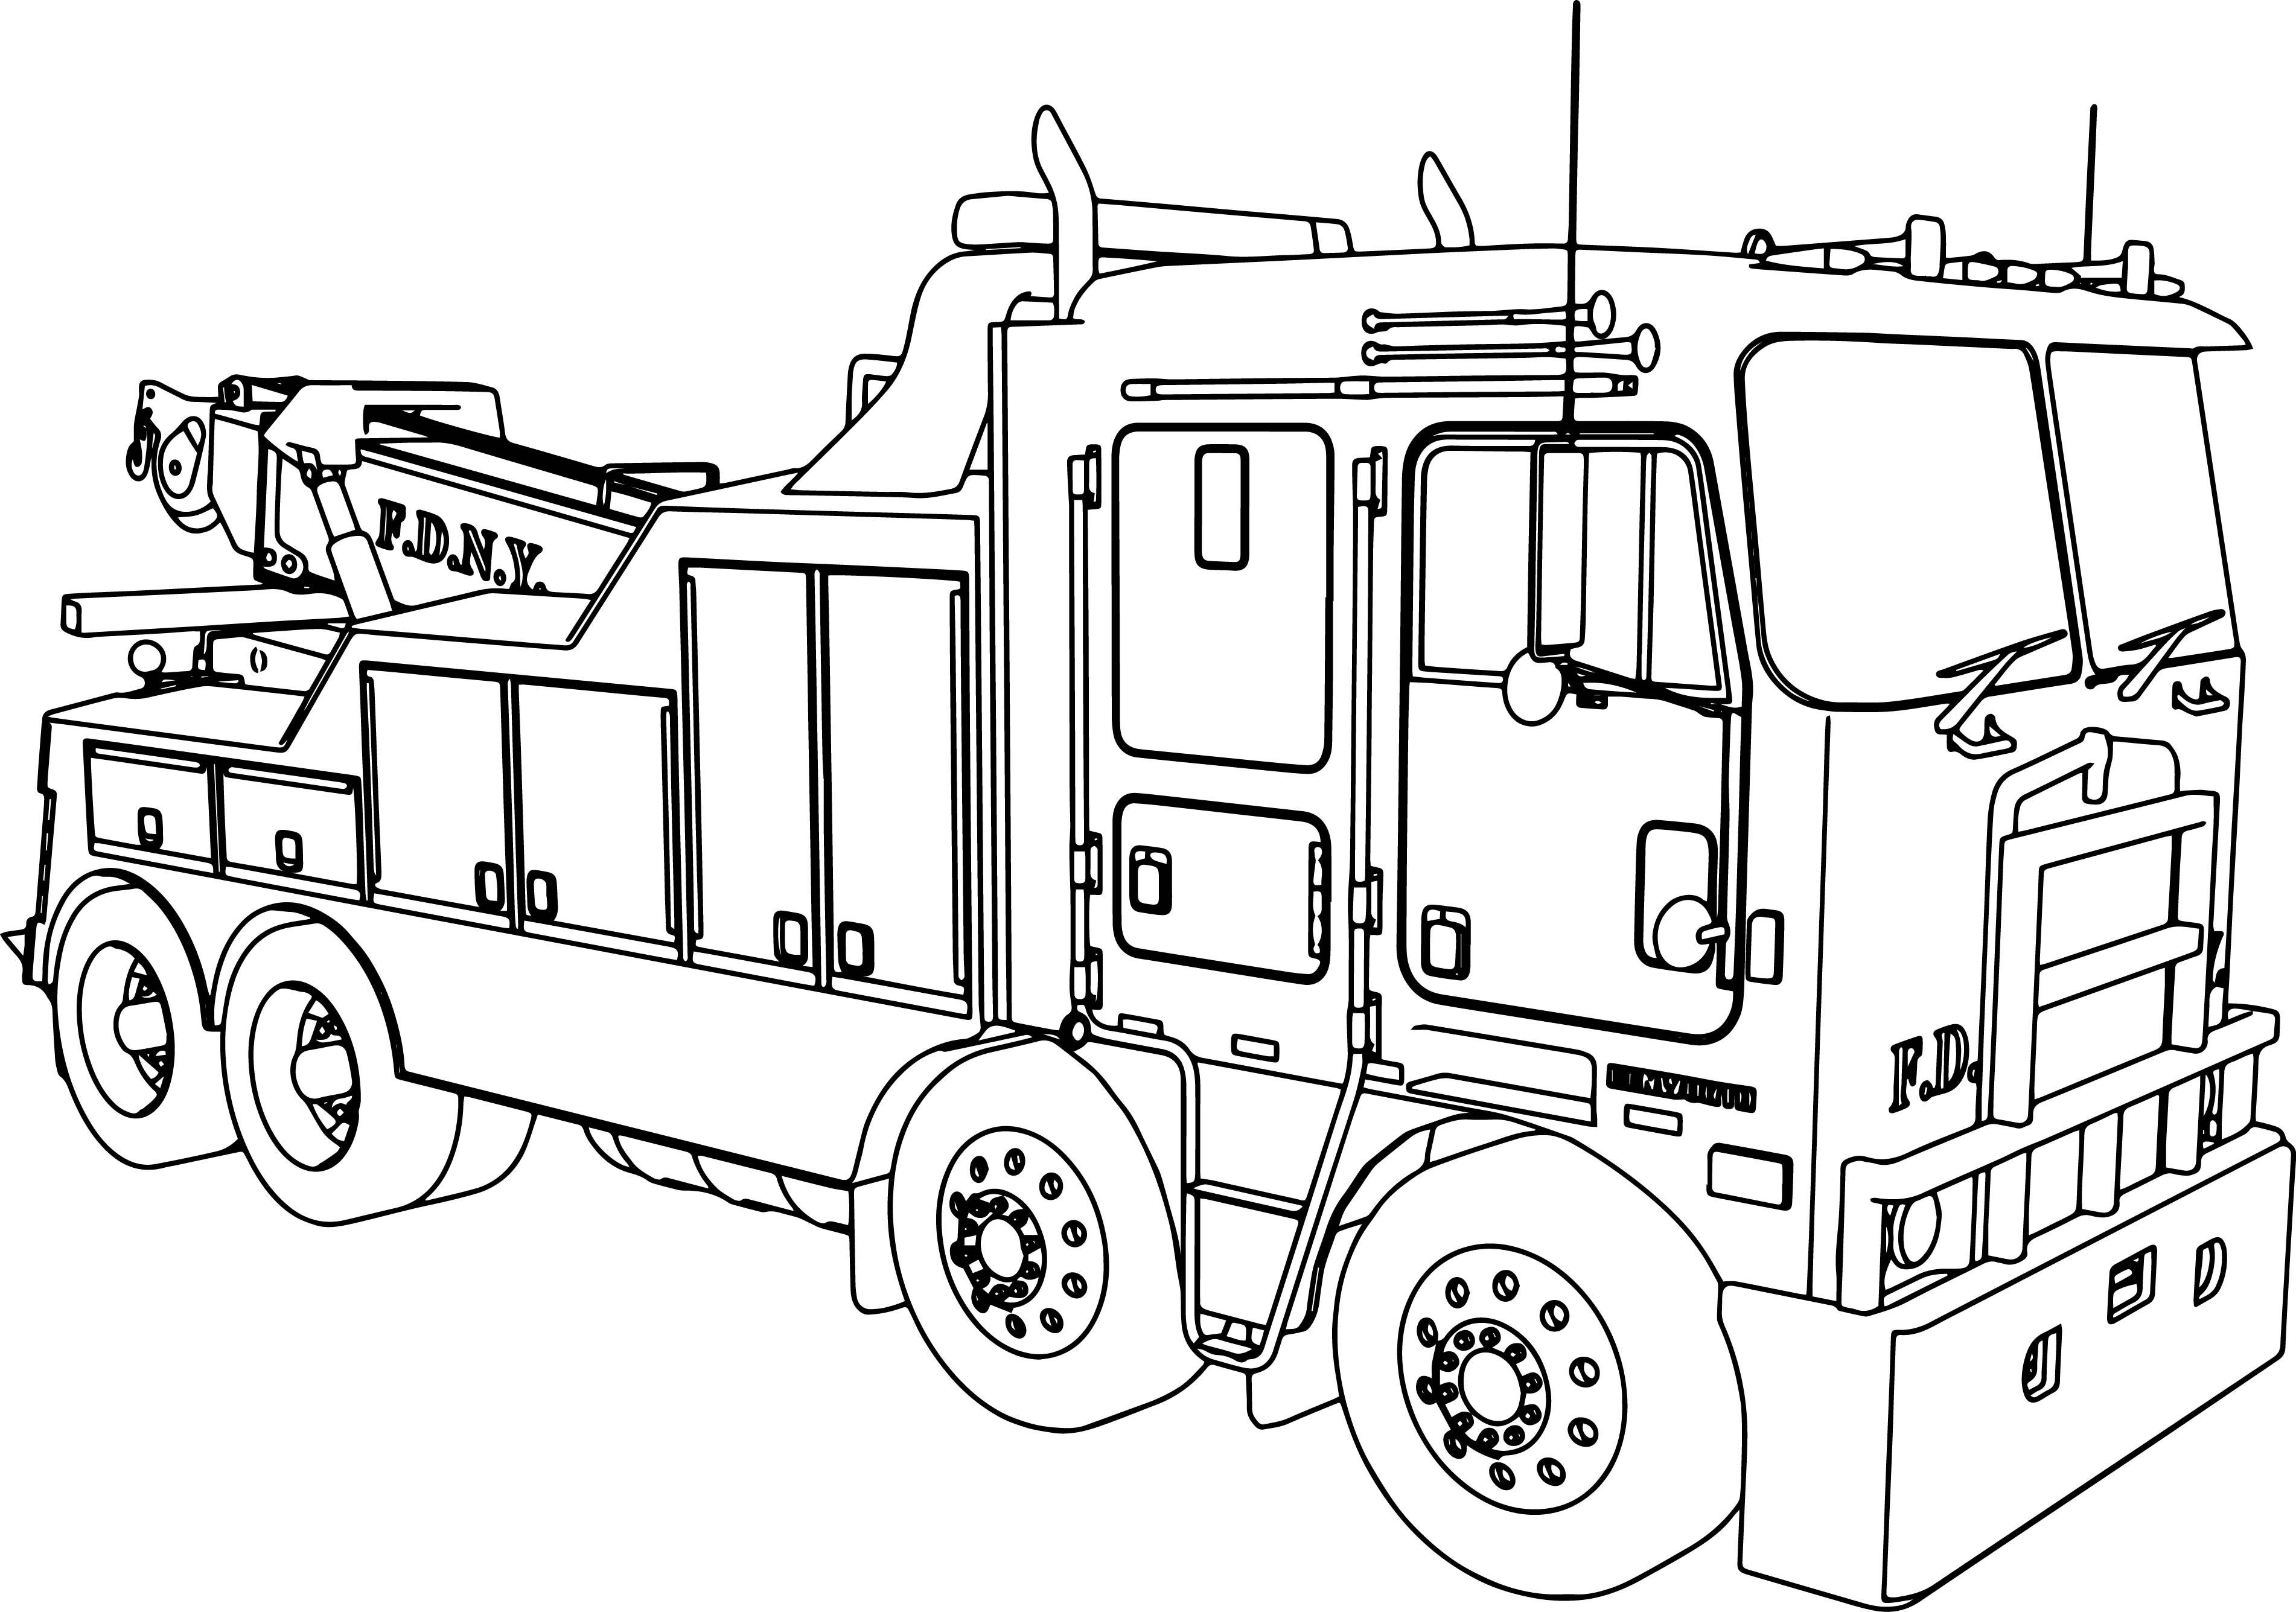 22 Awesome Image Of Fire Truck Coloring Page Davemelillo Com Train Coloring Pages Truck Coloring Pages Cars Coloring Pages